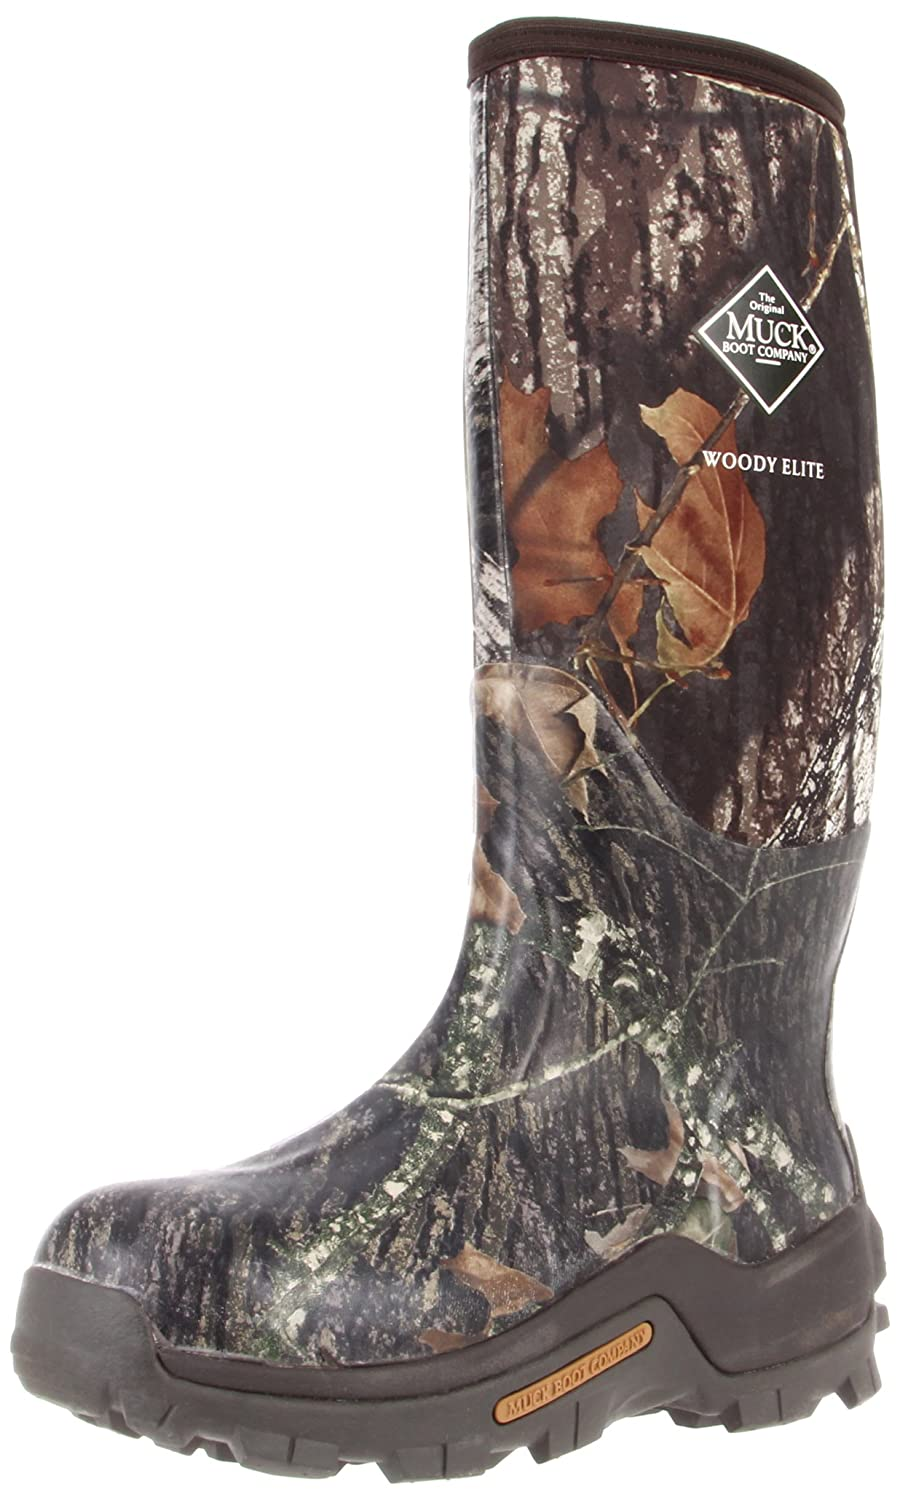 The Original MuckBoots Adult Woody Elite Hunting Boot WDE